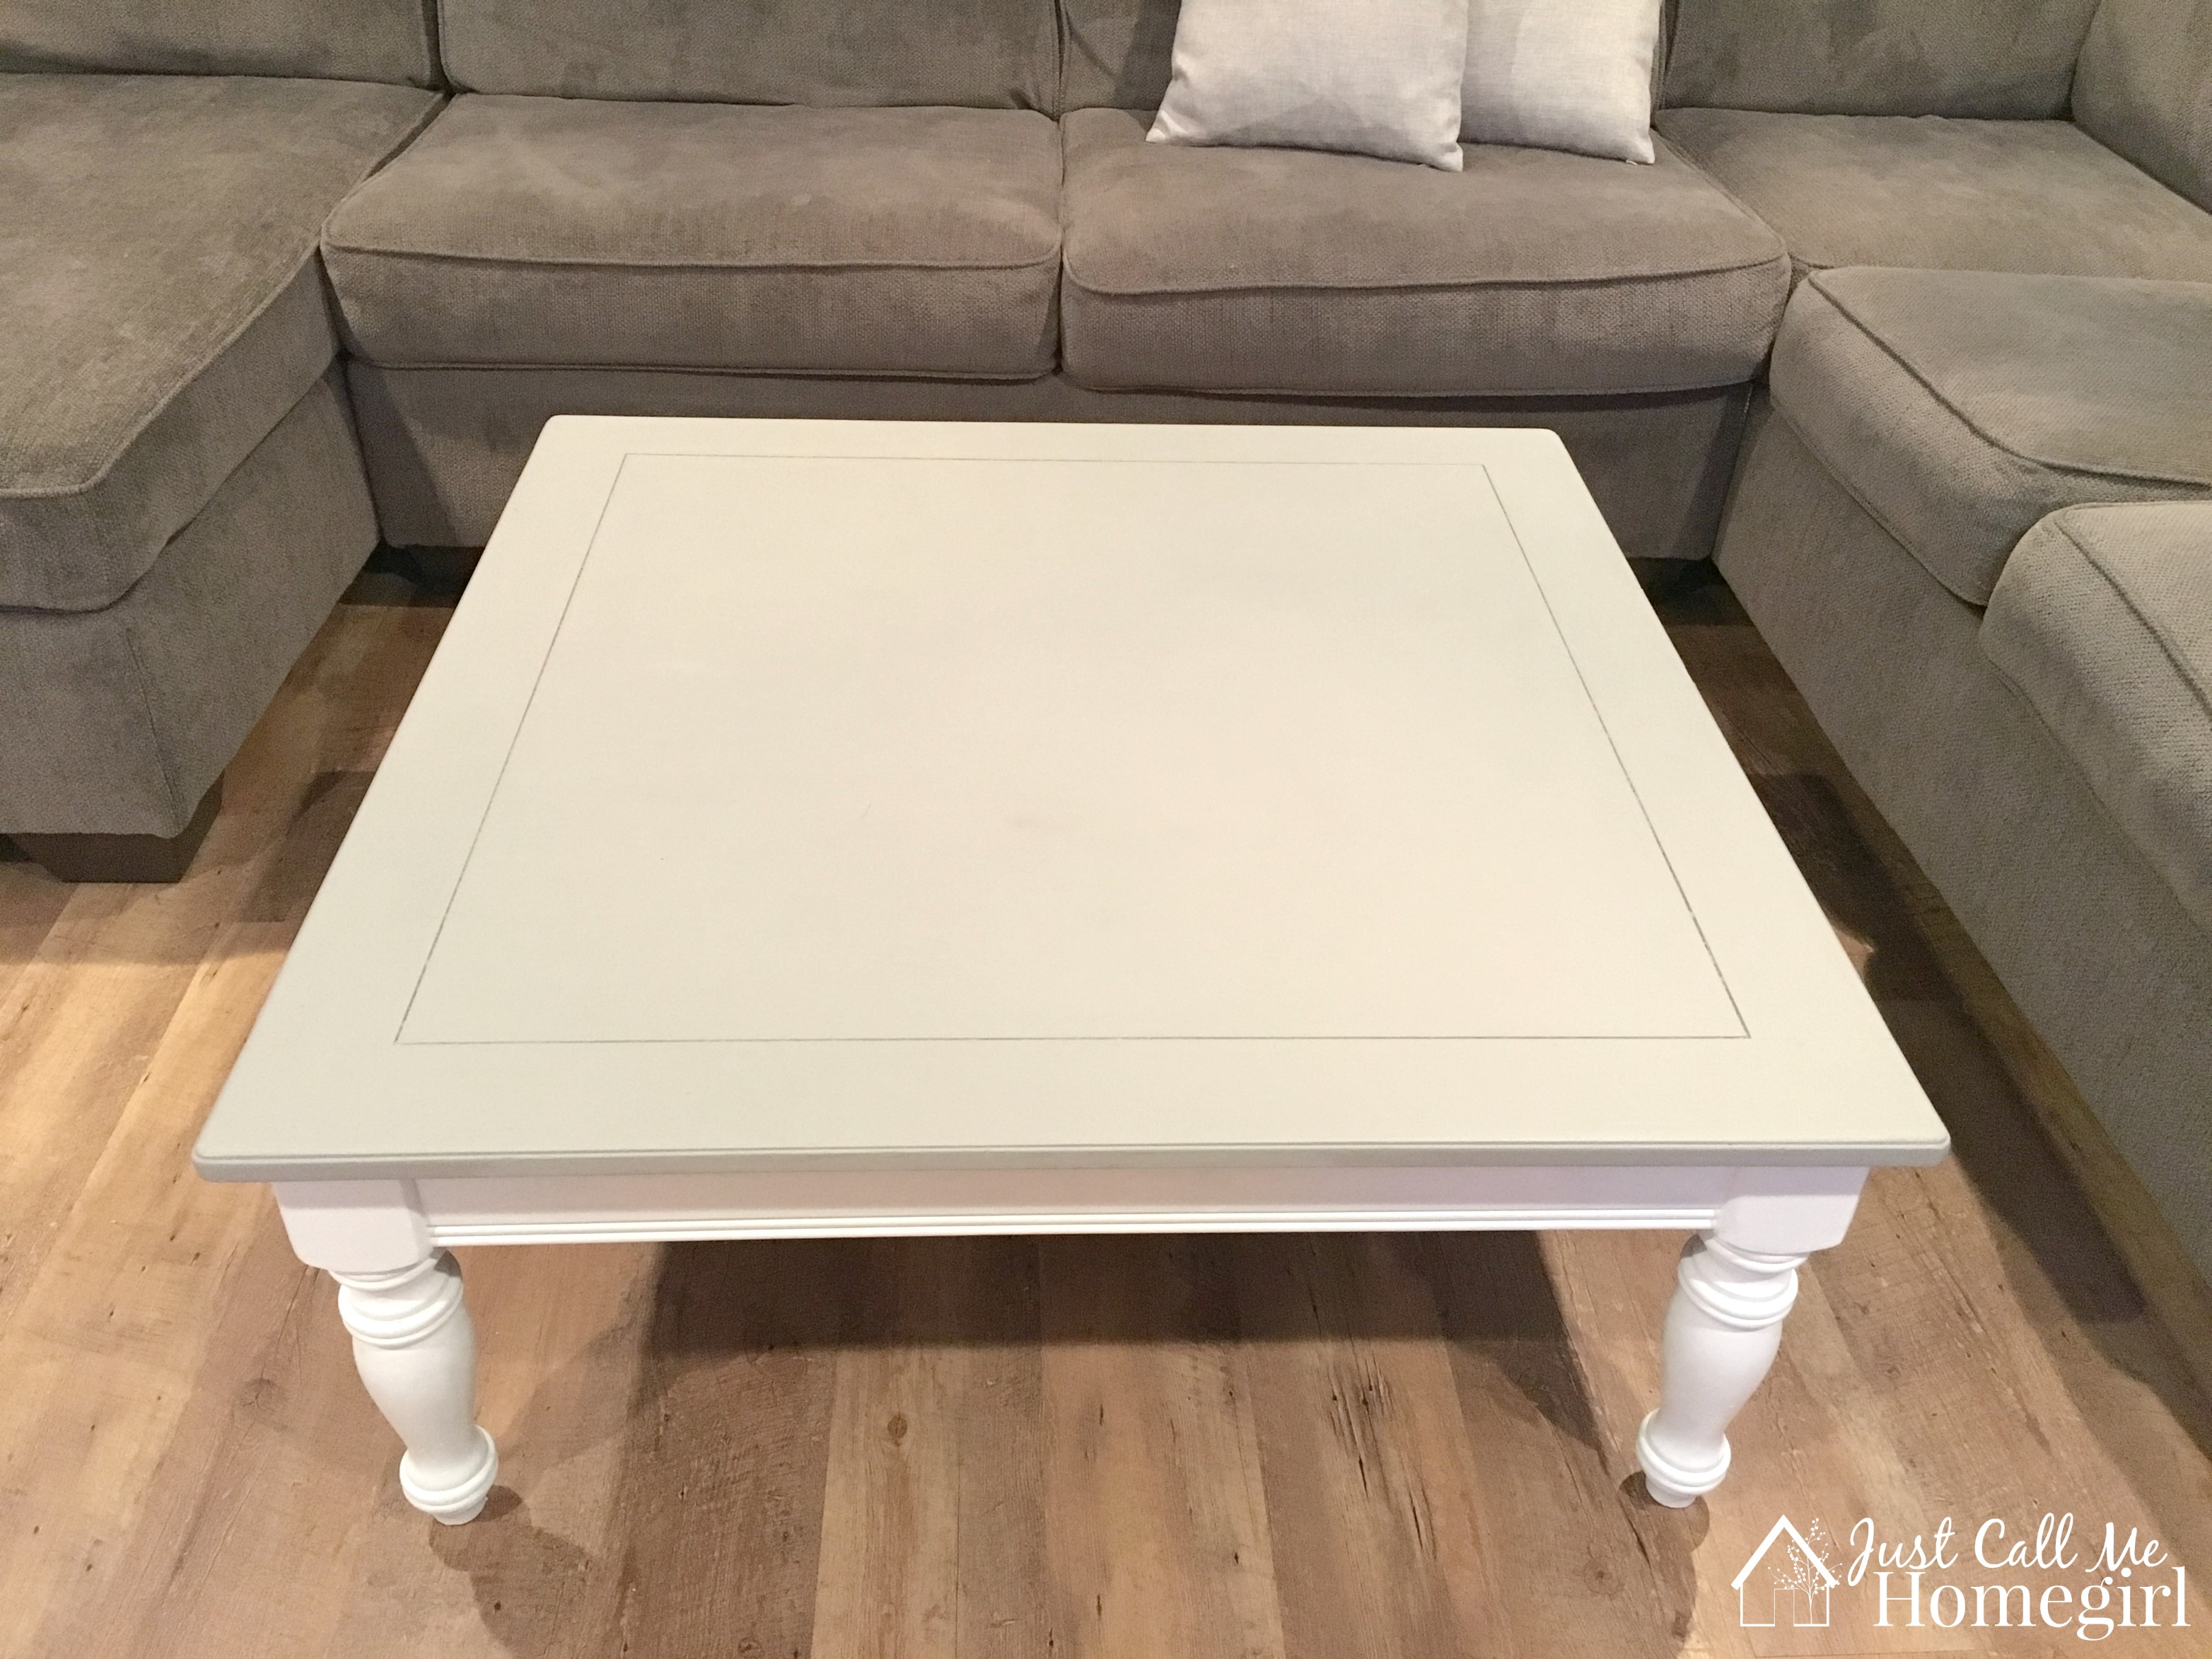 Terrific Stenciled Coffee Table Makeover Just Call Me Homegirl Camellatalisay Diy Chair Ideas Camellatalisaycom